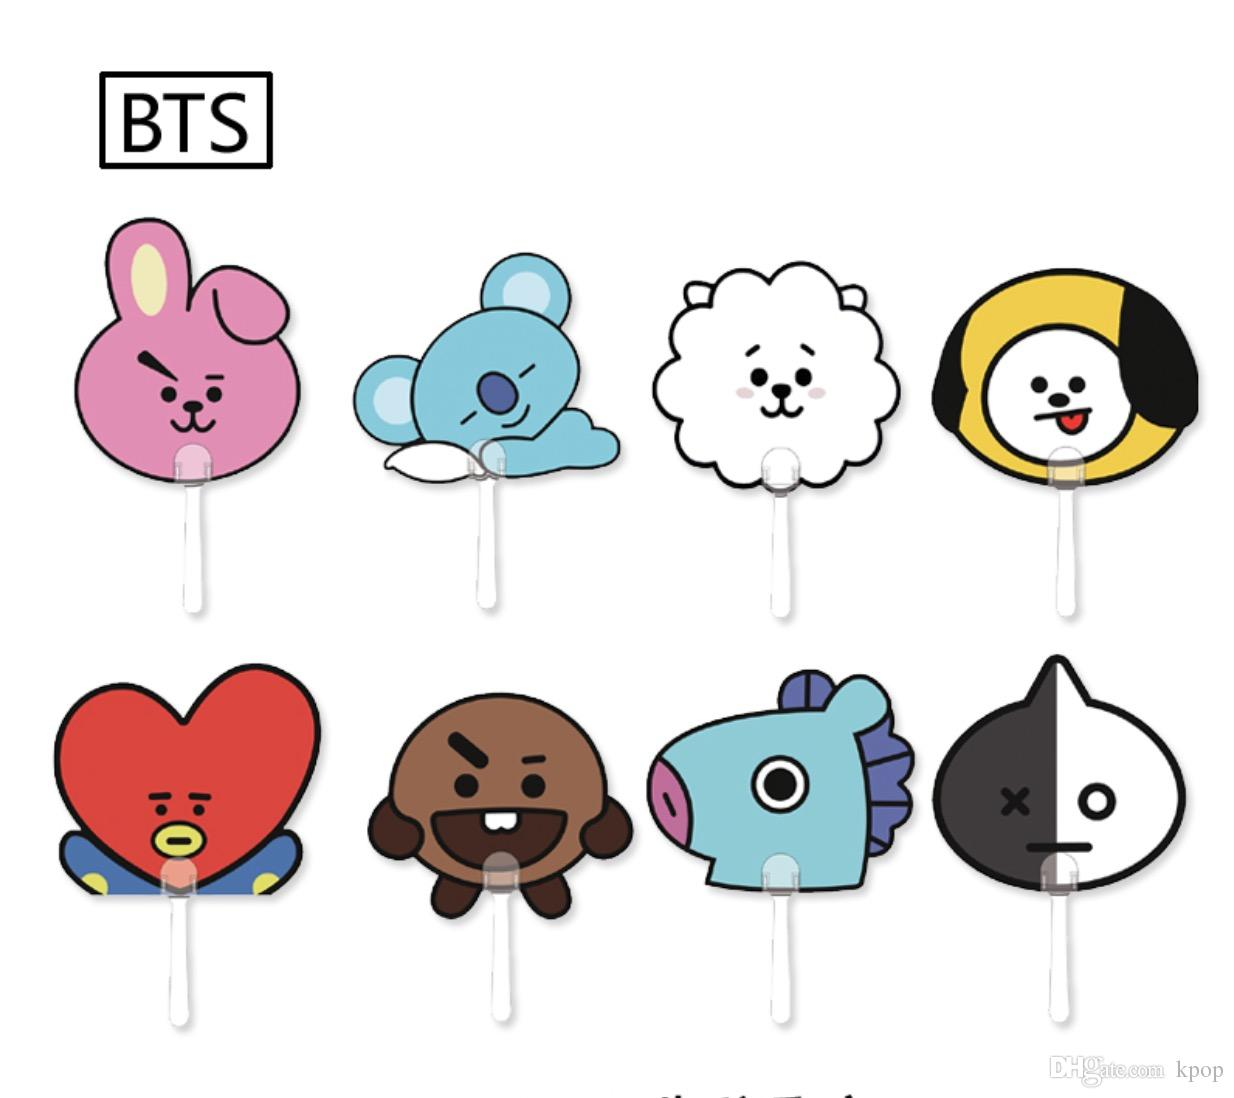 bts bt21 cartoon transparent plastic fan fan online with 515 bt21 transparent 1234 1098